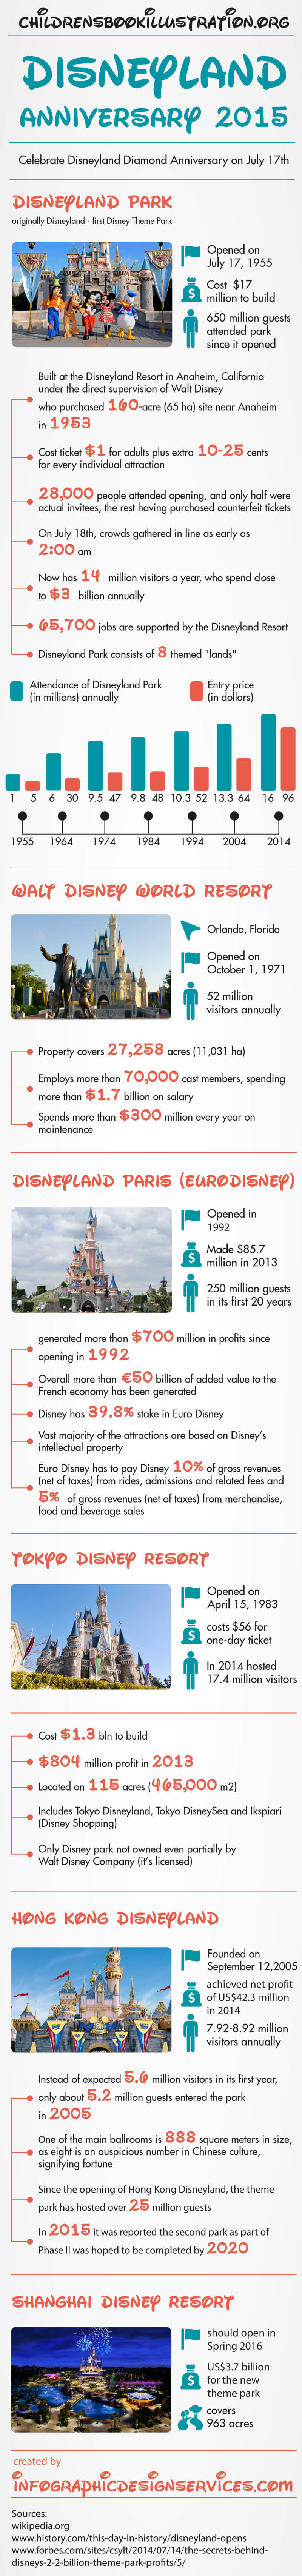 disneyland-anniversary-2015-in-the-overview-of-walt-disney-theme-parks-infographic